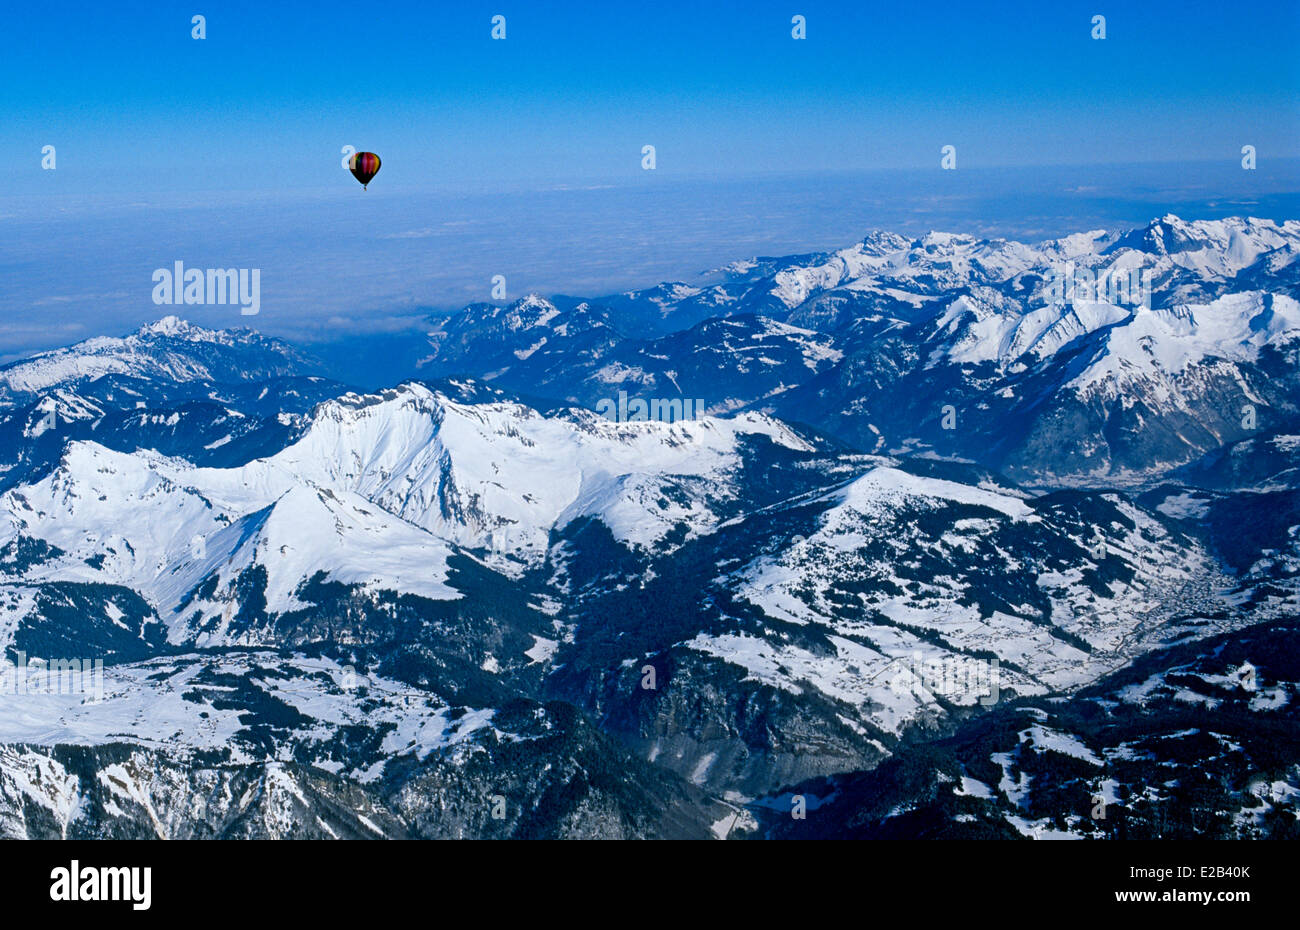 France, Haute Savoie, Megeve, flight over the Alps in hot air balloon - Stock Image